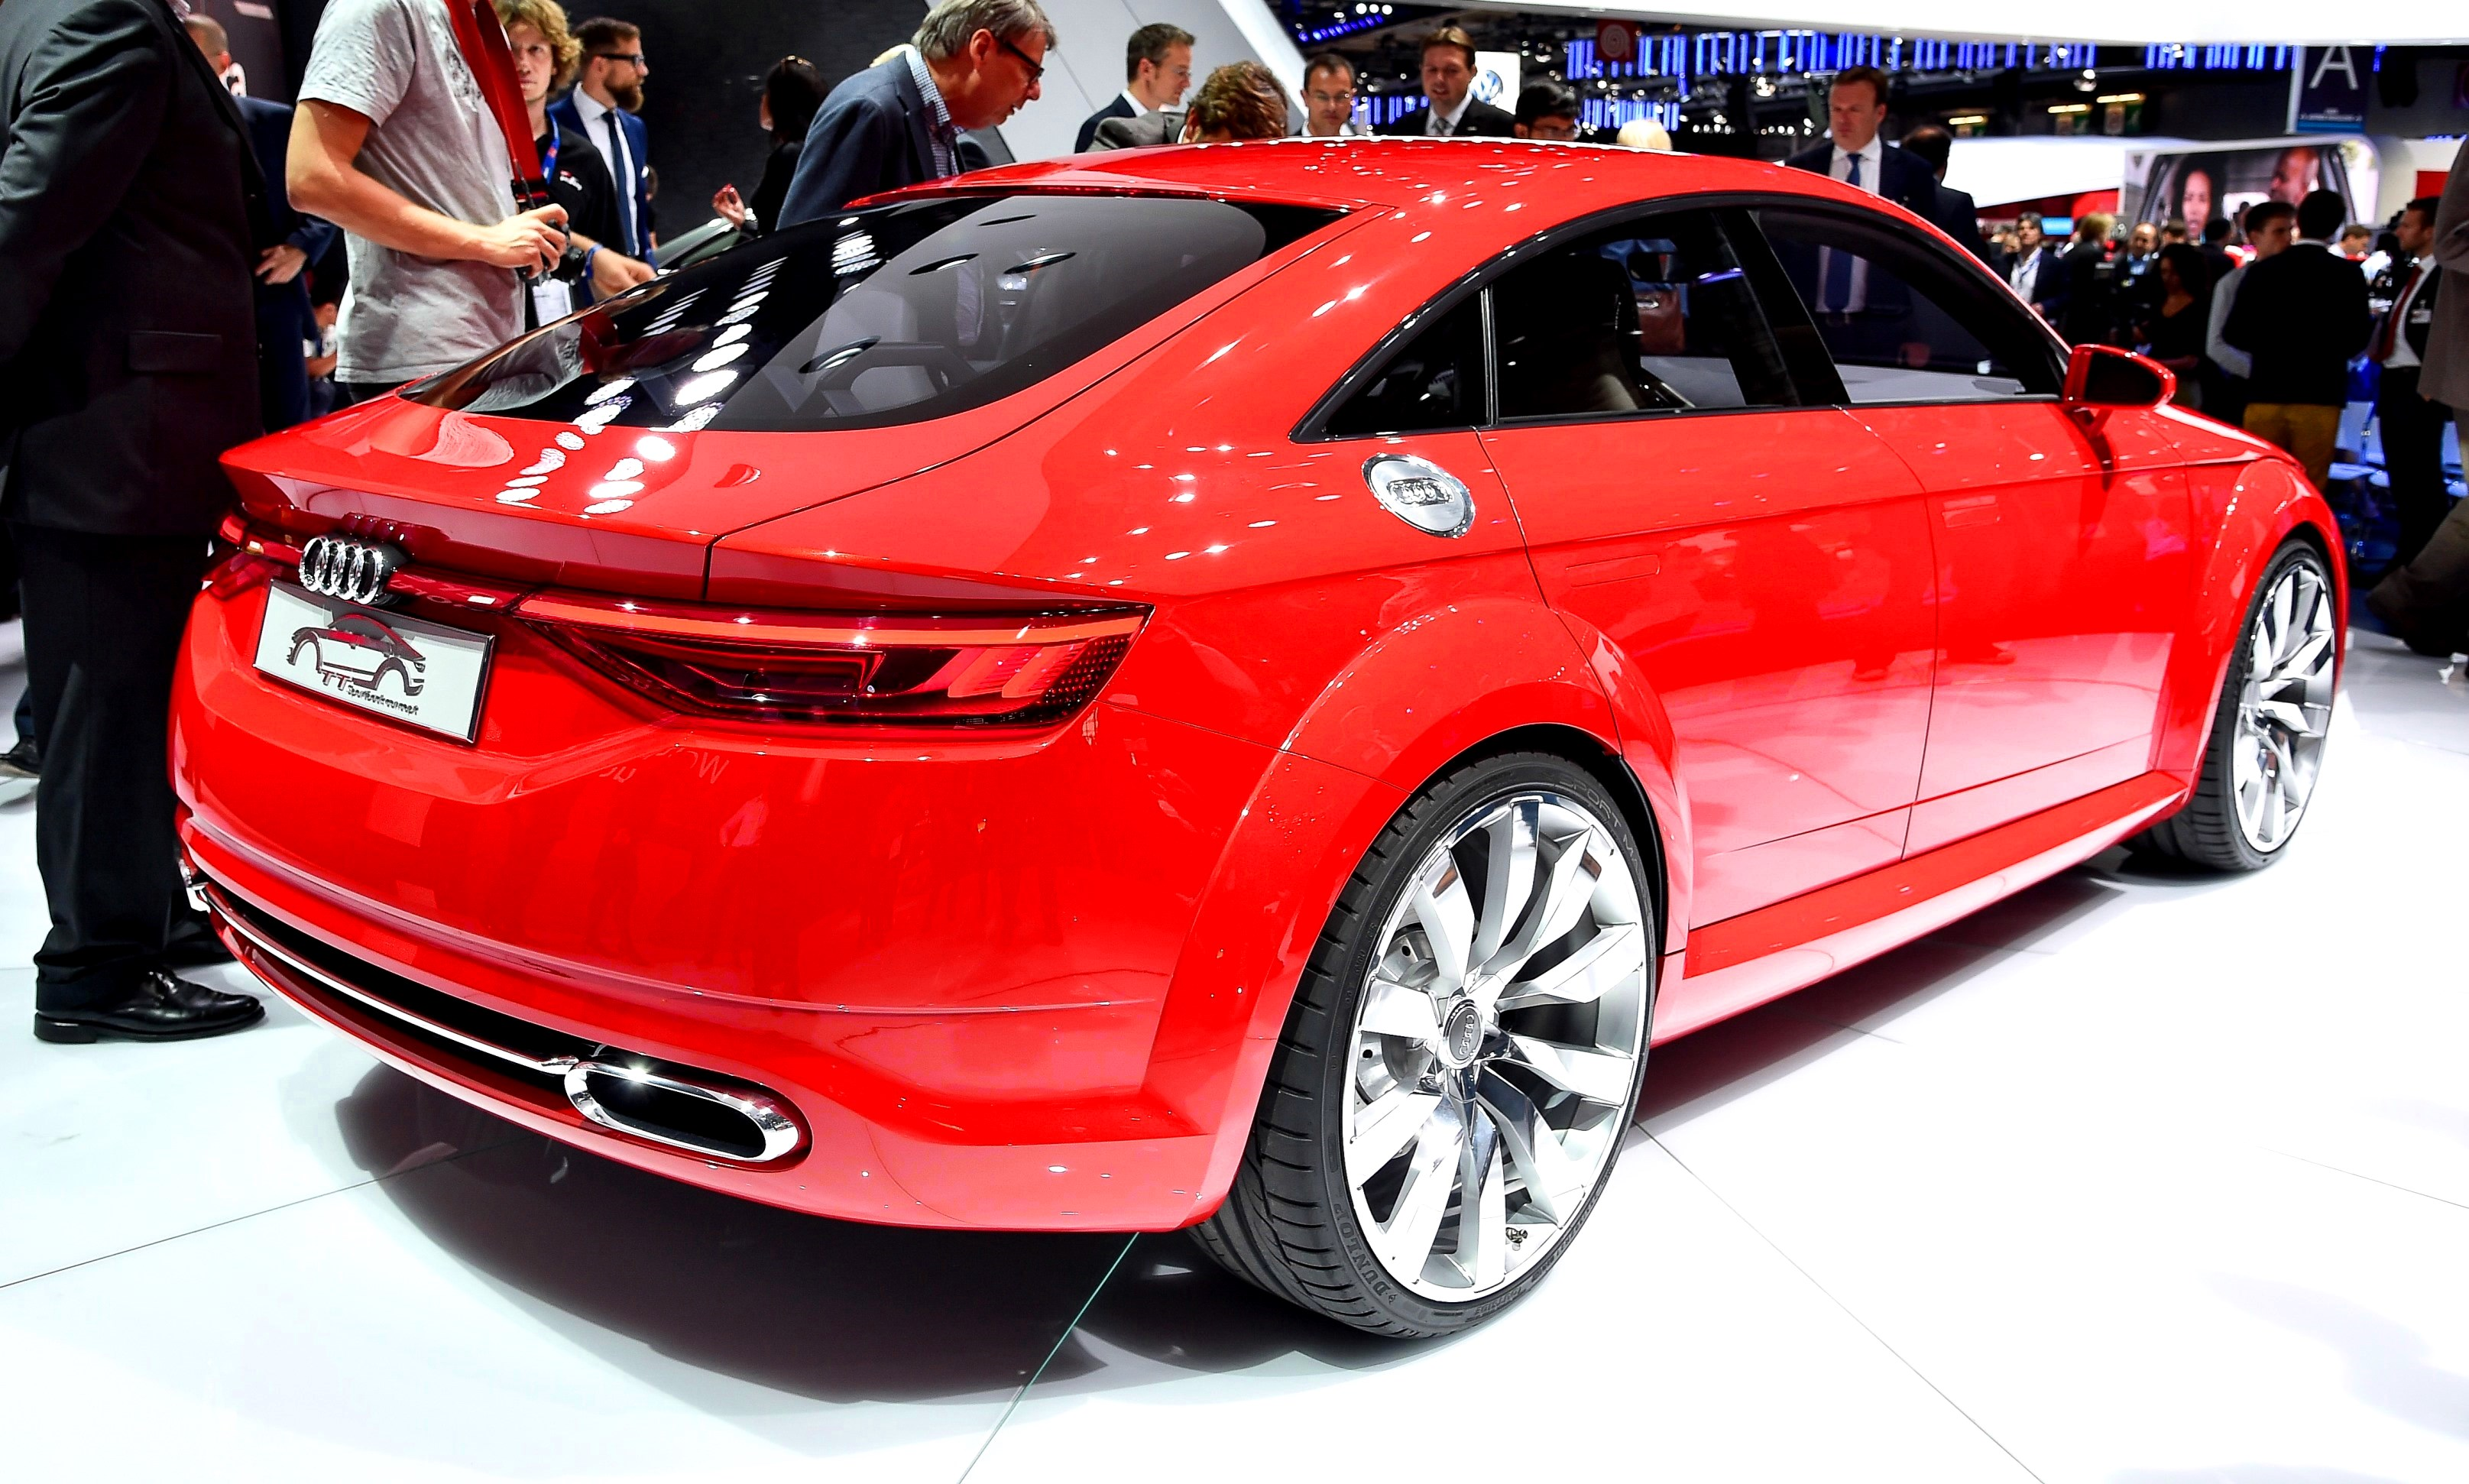 2014 Audi Tt Sportback Concept Is A Stylish Escape From